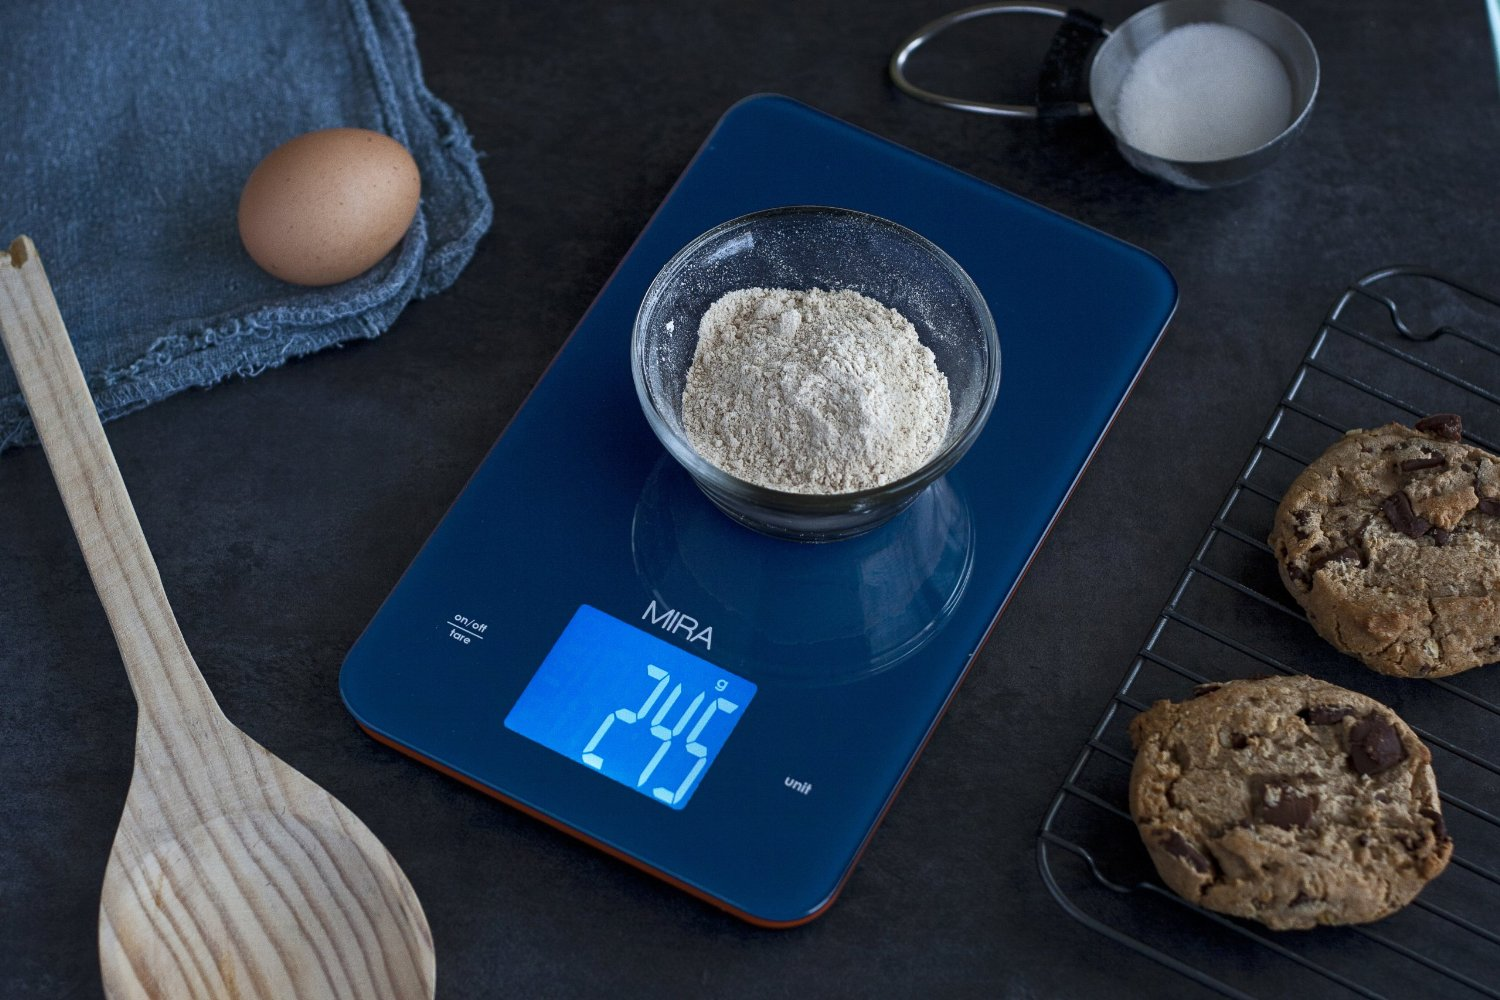 MIRA Glass Digital Kitchen Scale - I LOVE mine for all things cooking and DIY.